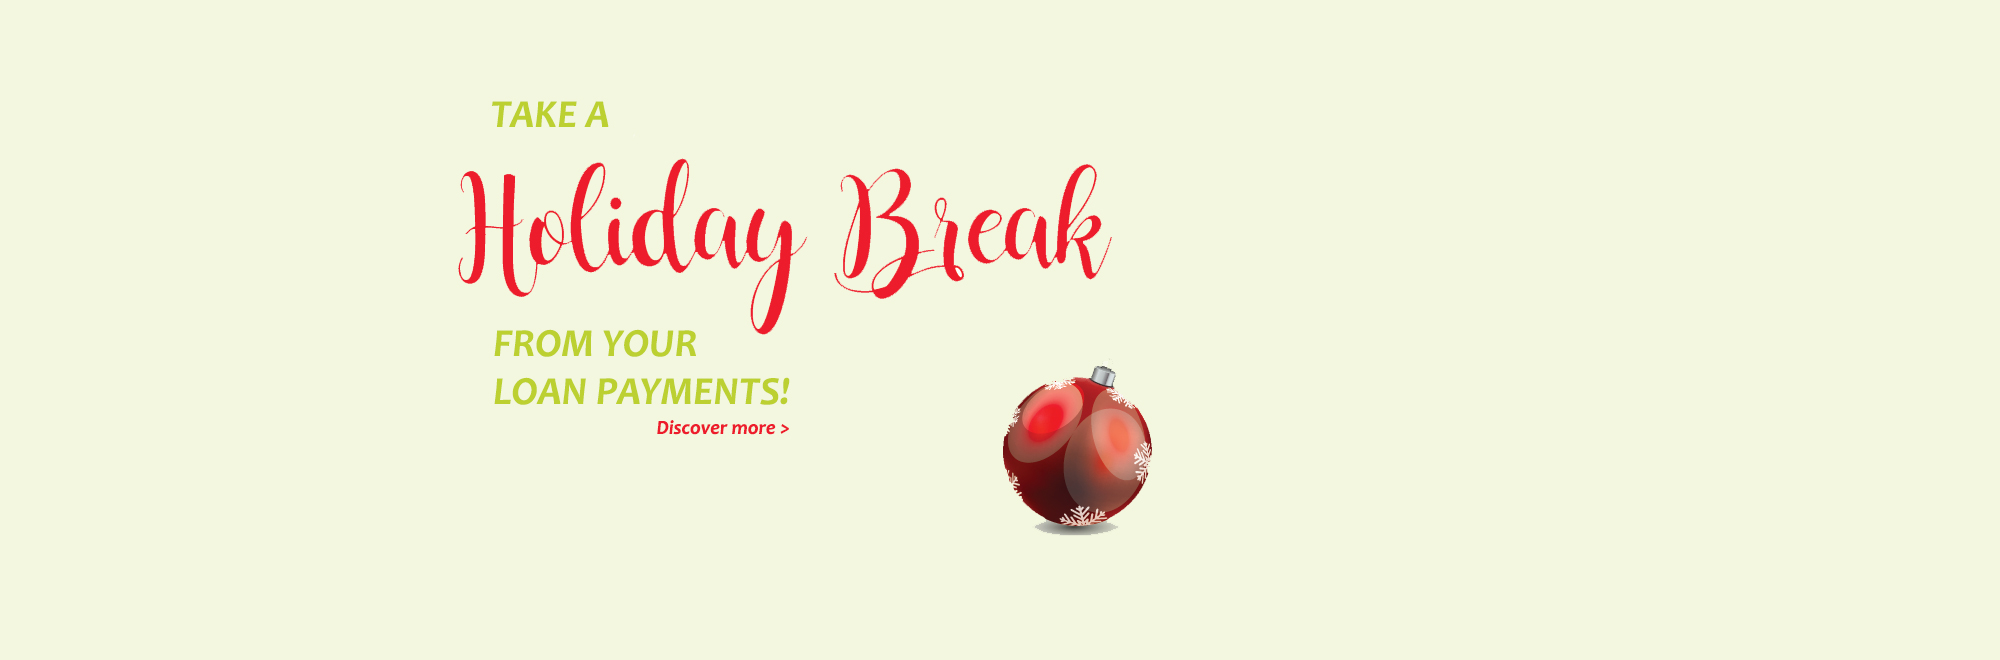 Take a Holiday Break from your Loan Payment